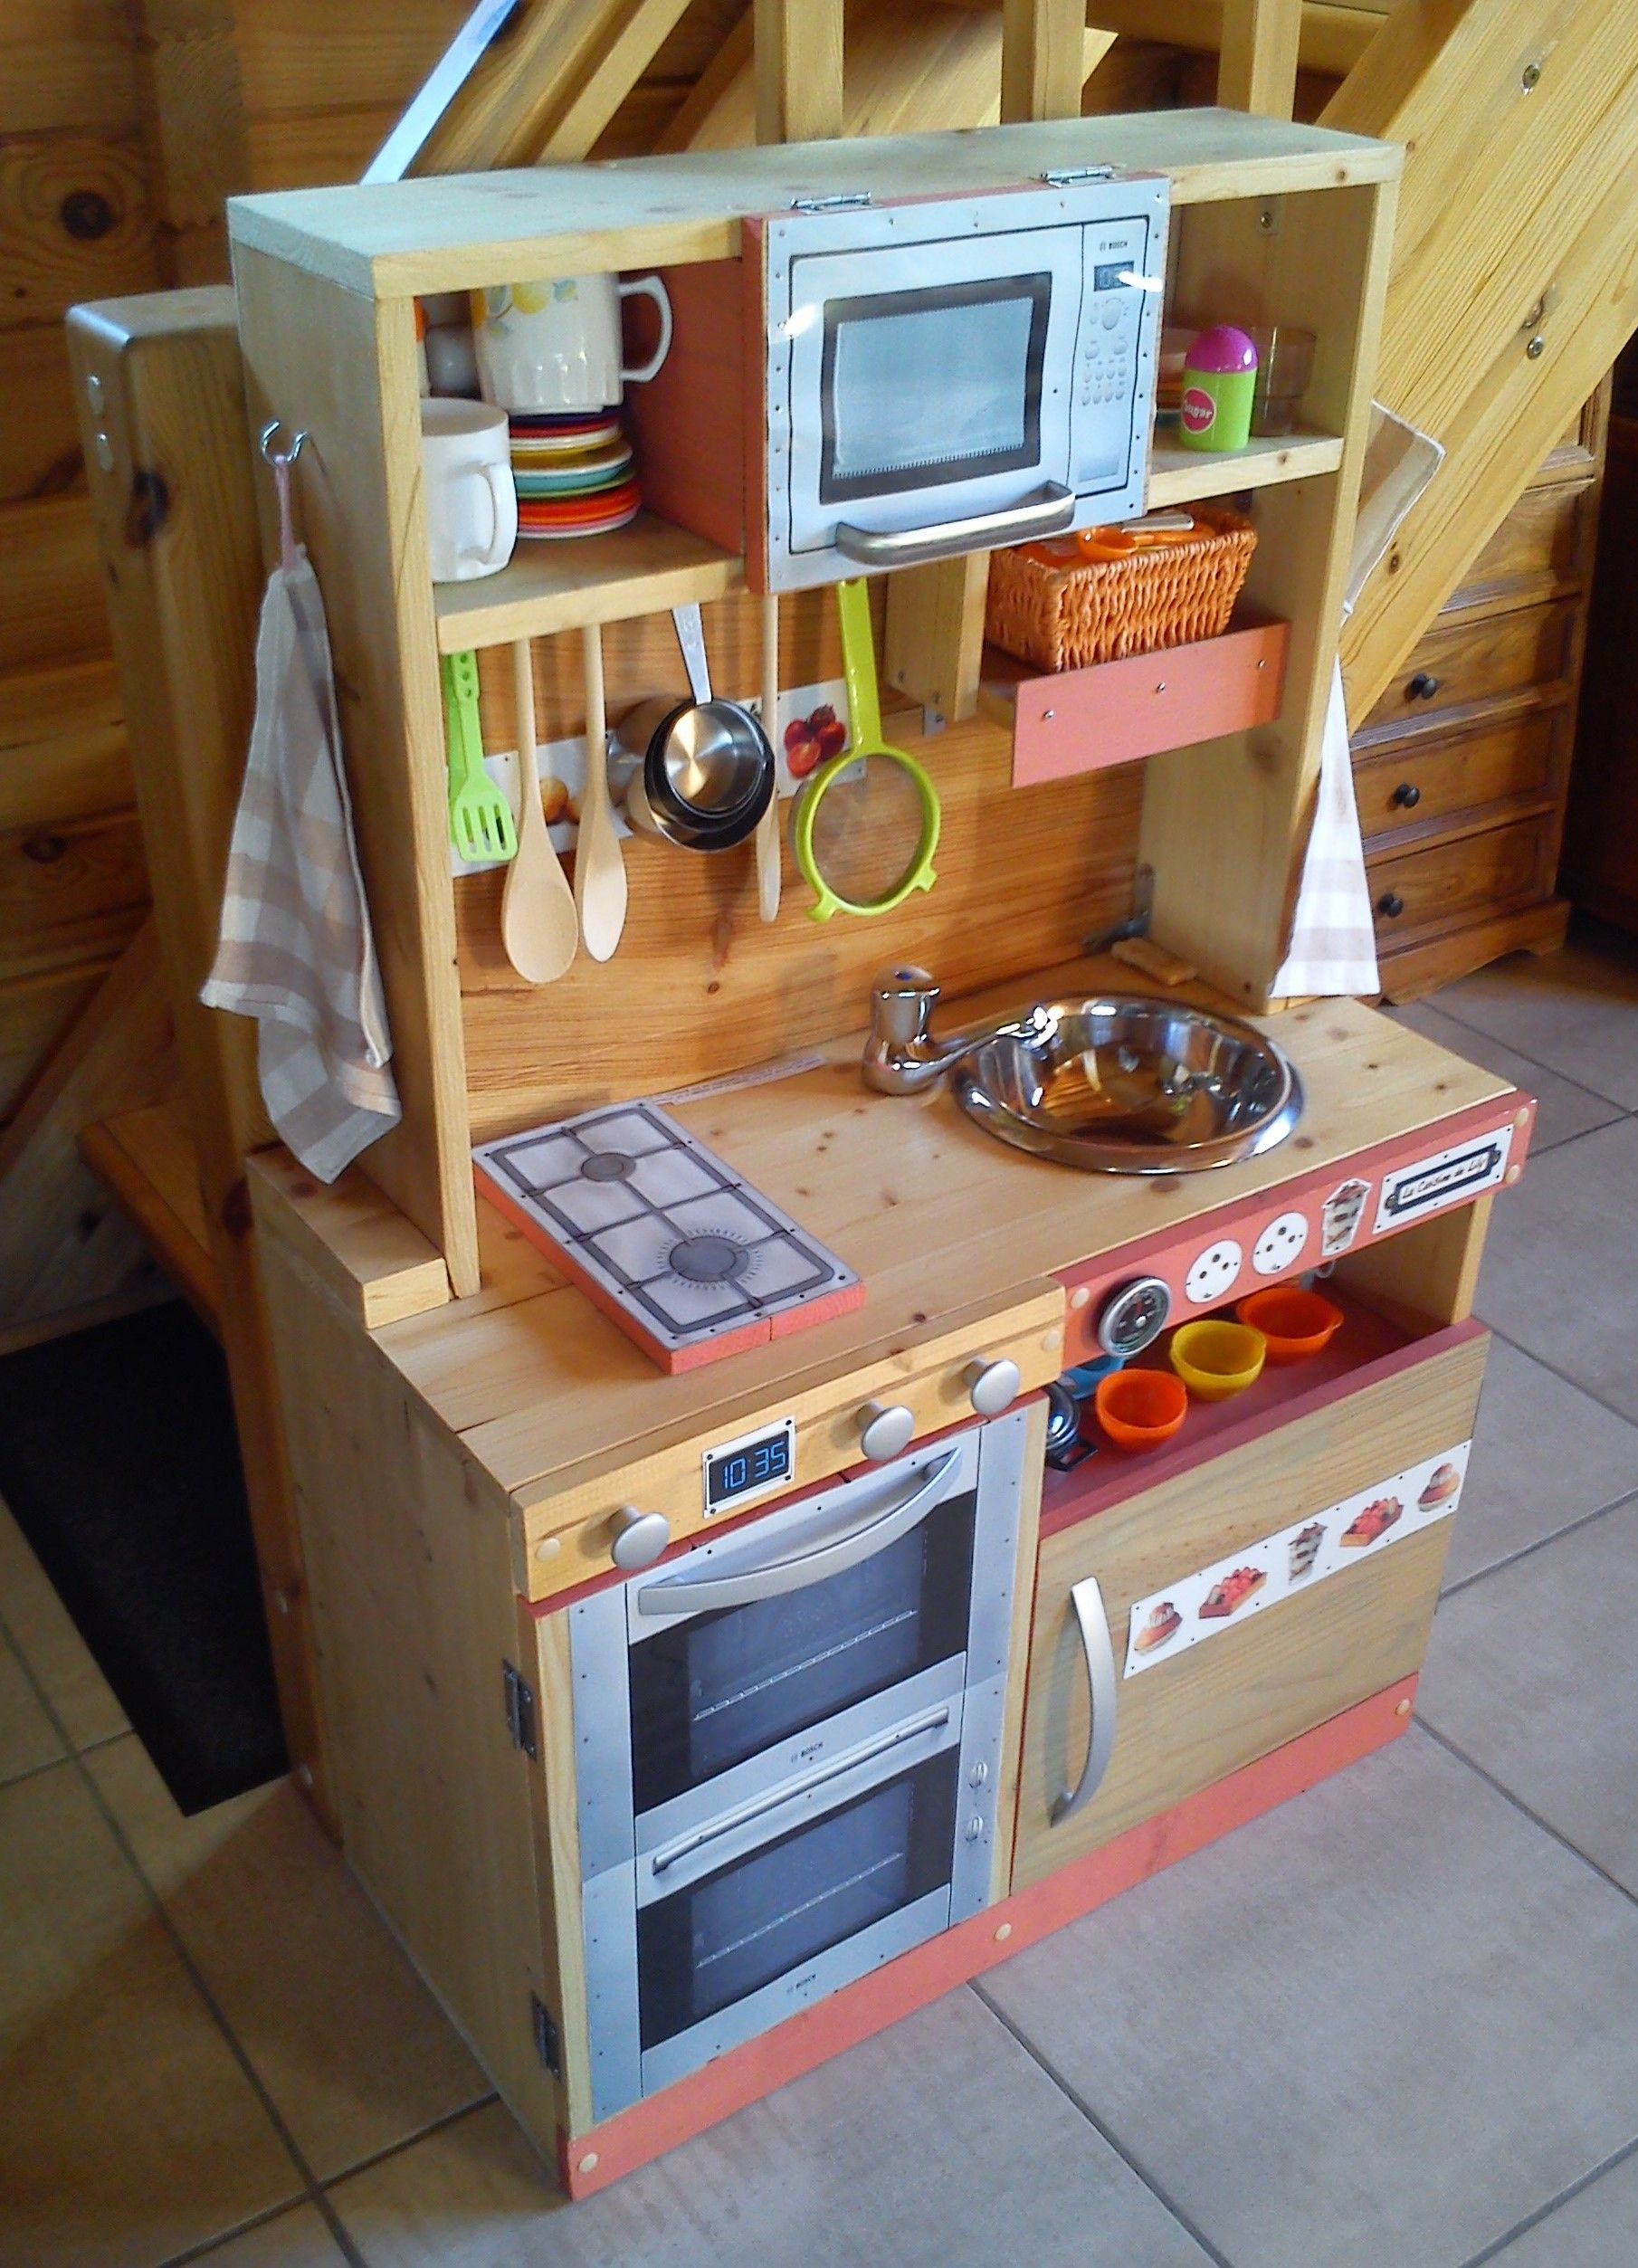 cuisini re en bois pour enfant fait maison diy cuisines enfants pinterest. Black Bedroom Furniture Sets. Home Design Ideas